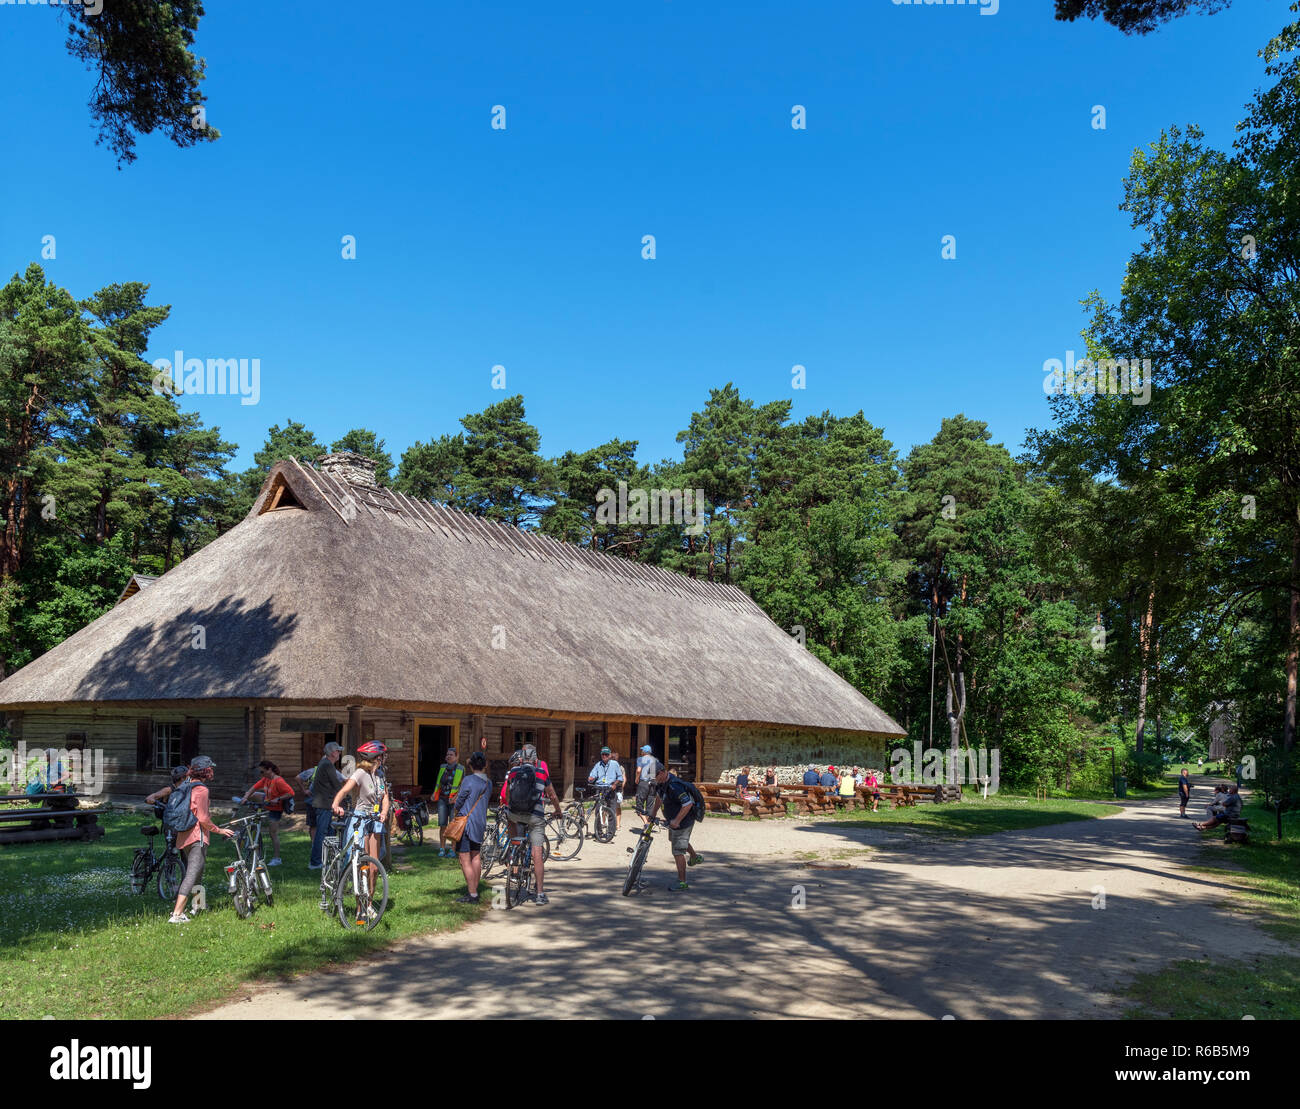 Cyclists outside the 19th century roadside Kolu Inn (from Kolu village in Harju County), Estonian Open Air Museum (Vabaõhumuuseum), Tallinn, Estonia - Stock Image